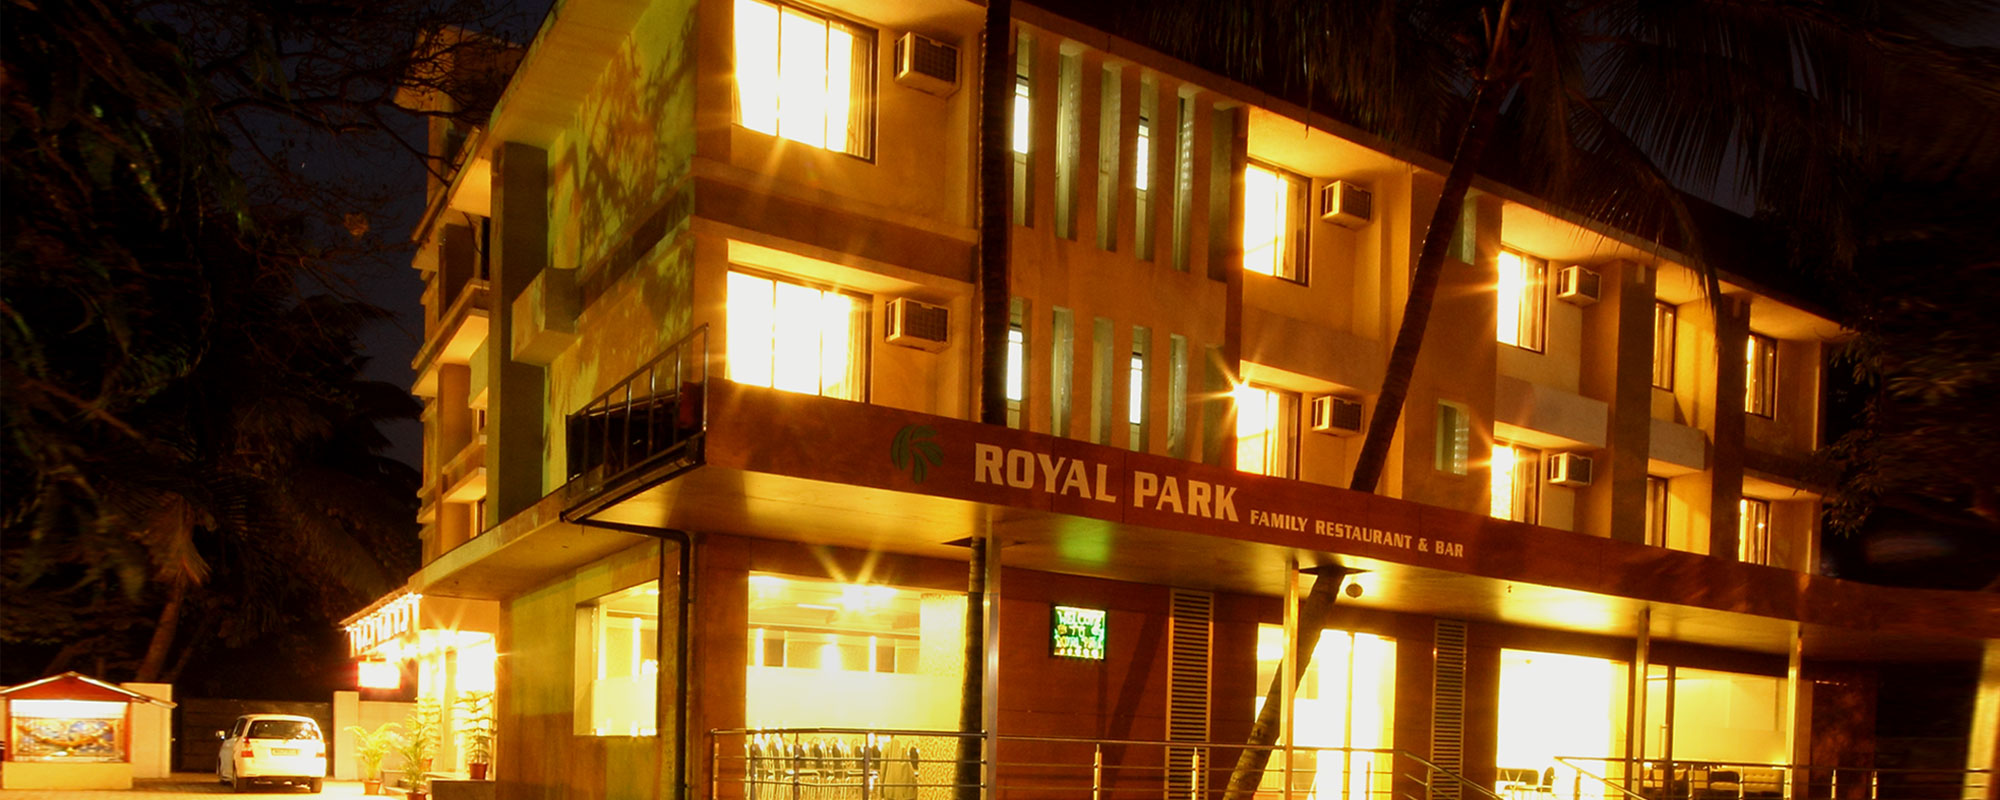 Hotel Royal Park Residency